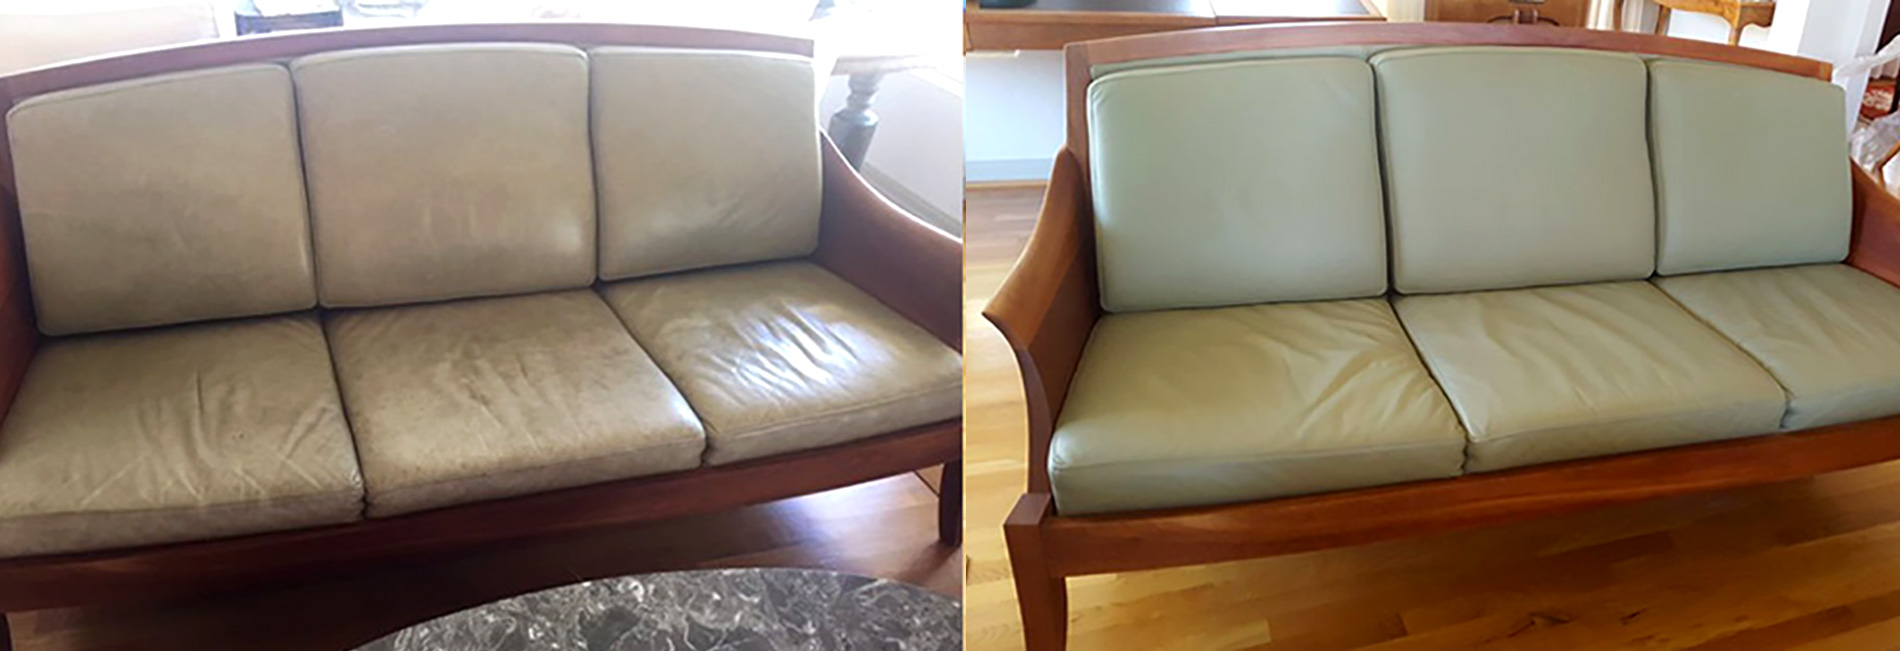 San Diego Furniture Leather Repair Leather Restoration